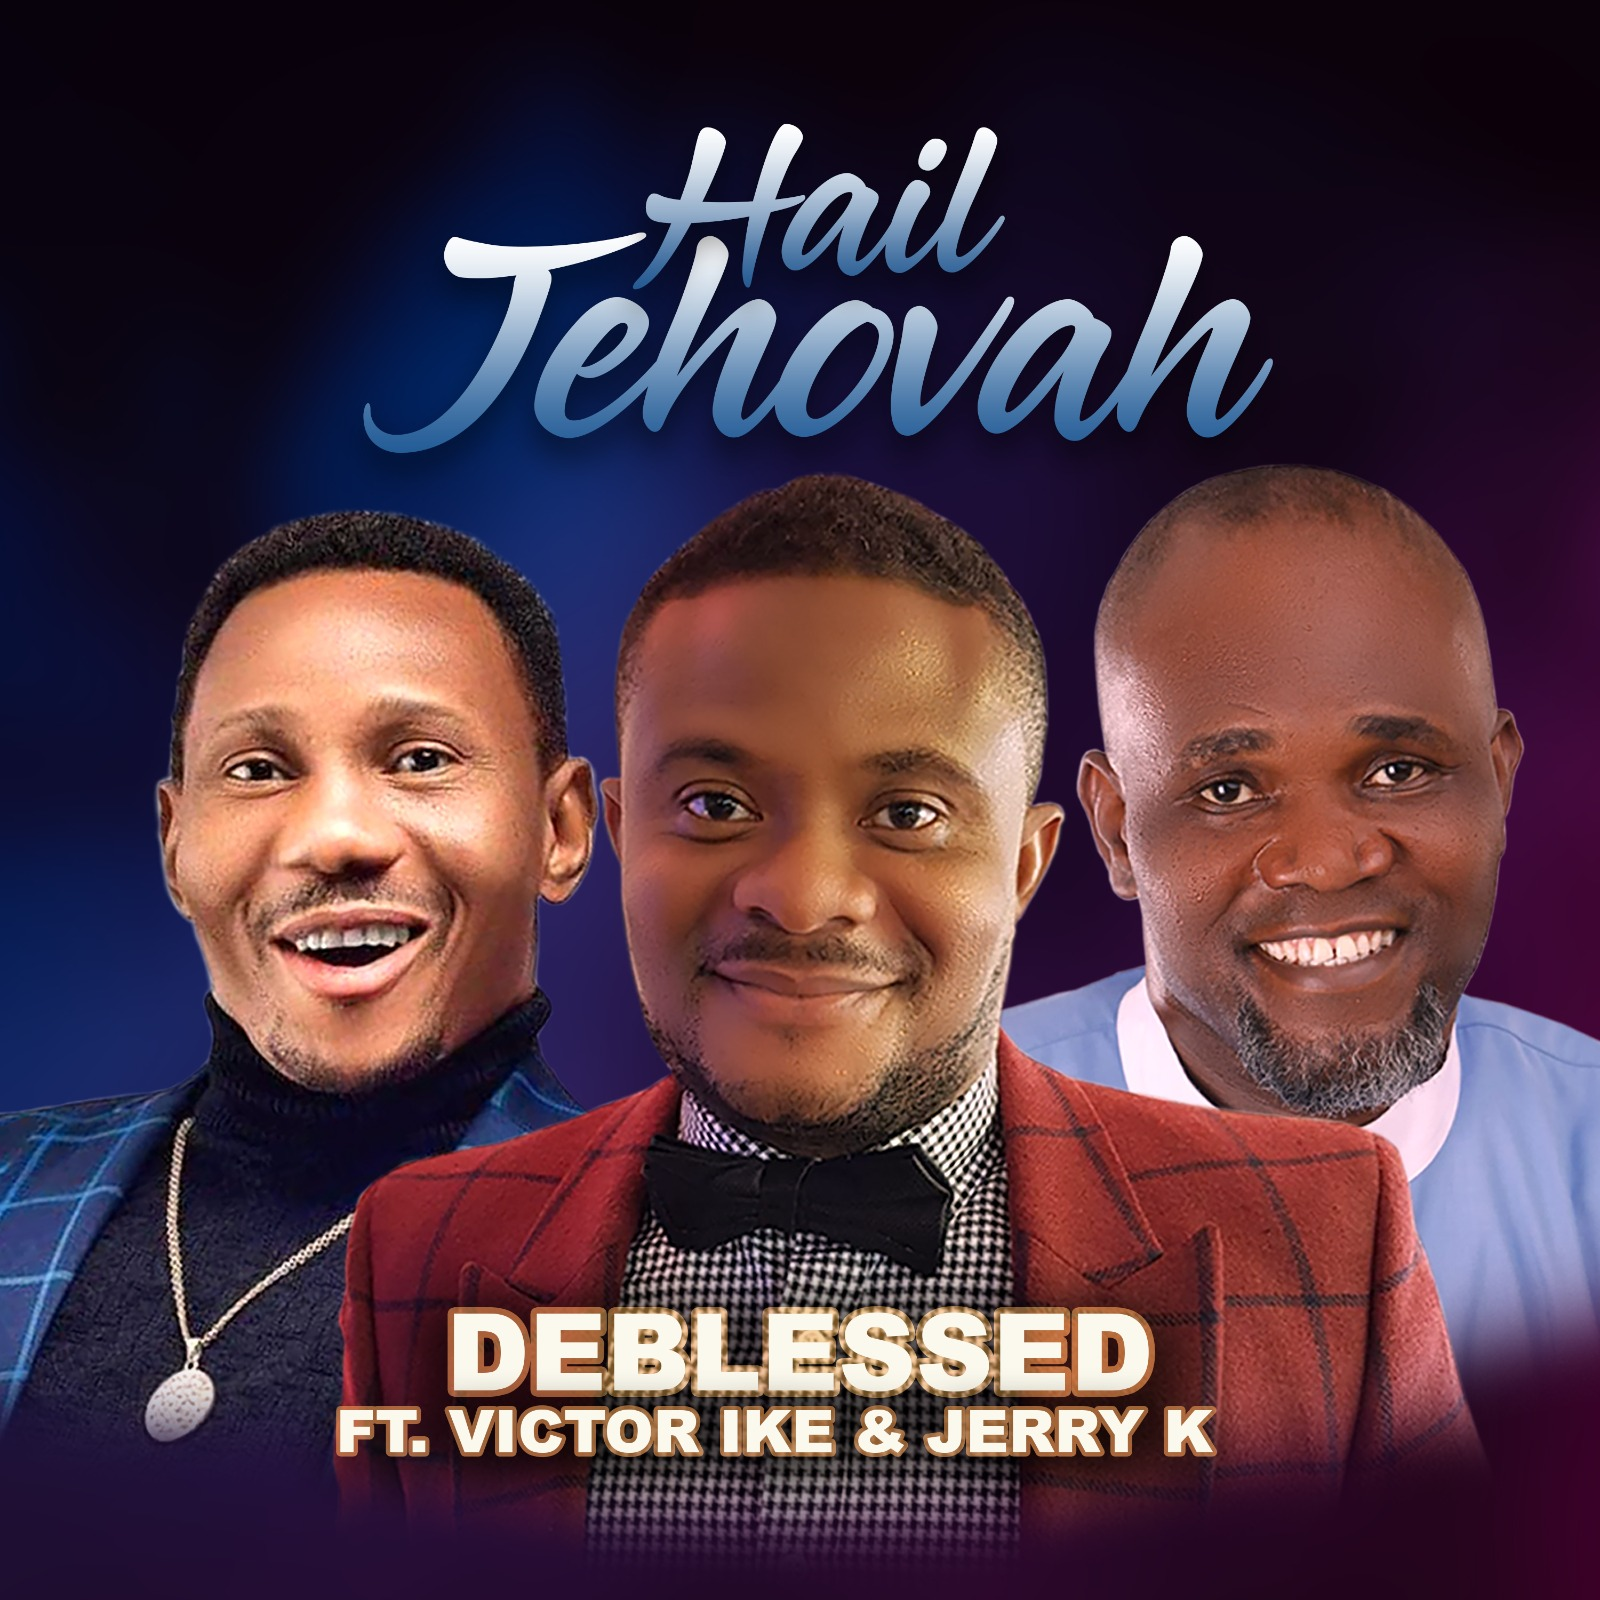 DEBLESSED – Hail Jehovah Ft. Victor Ike x Jerry K